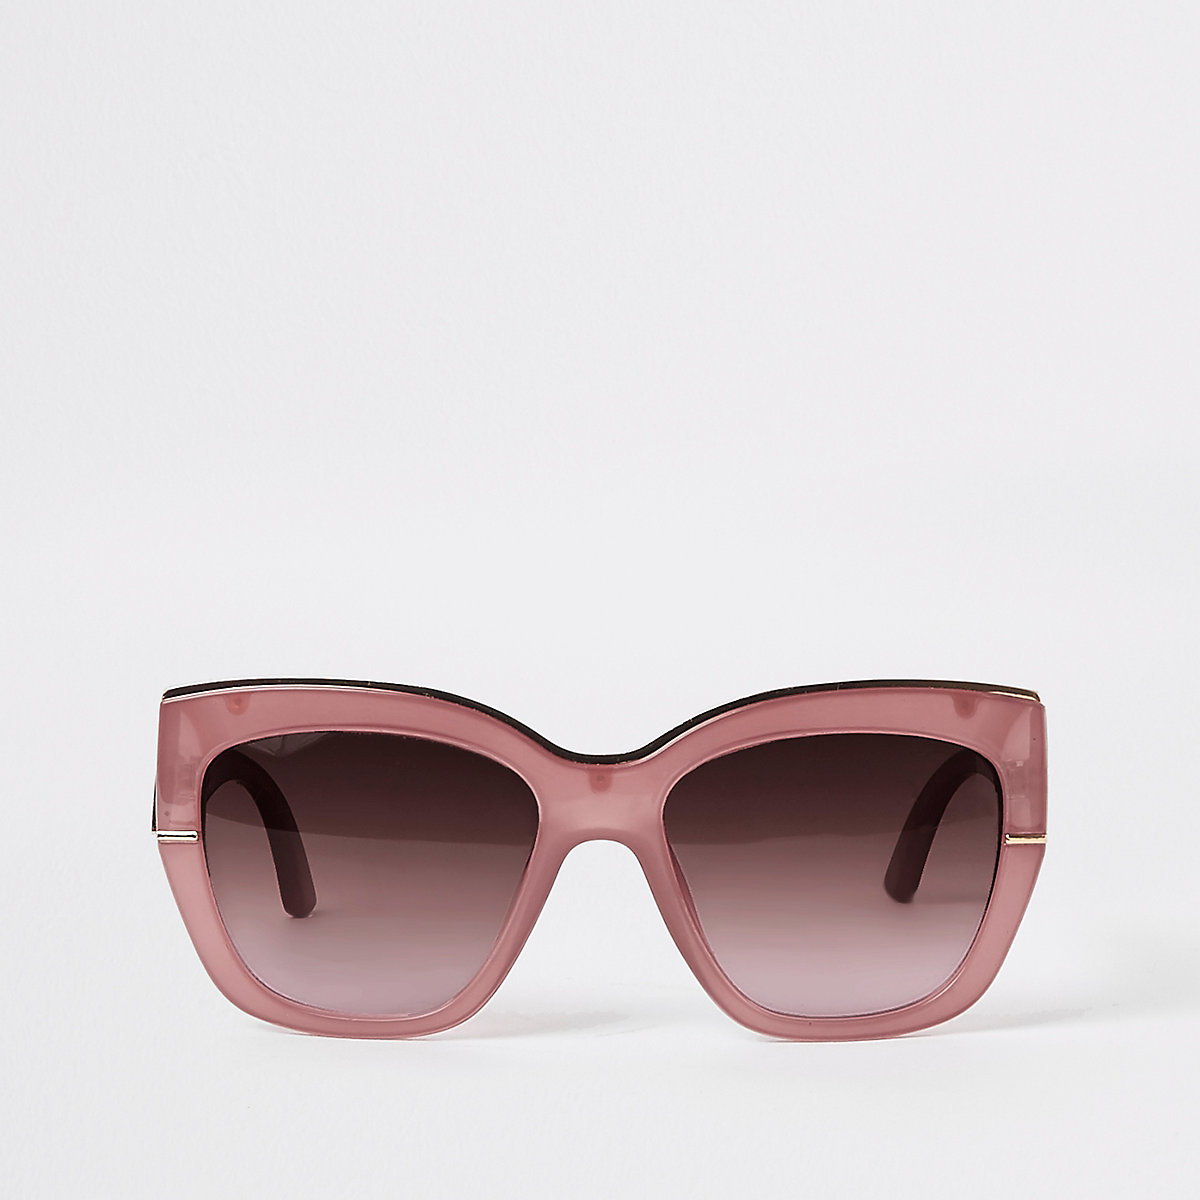 Pink gold tone trim glam sunglasses